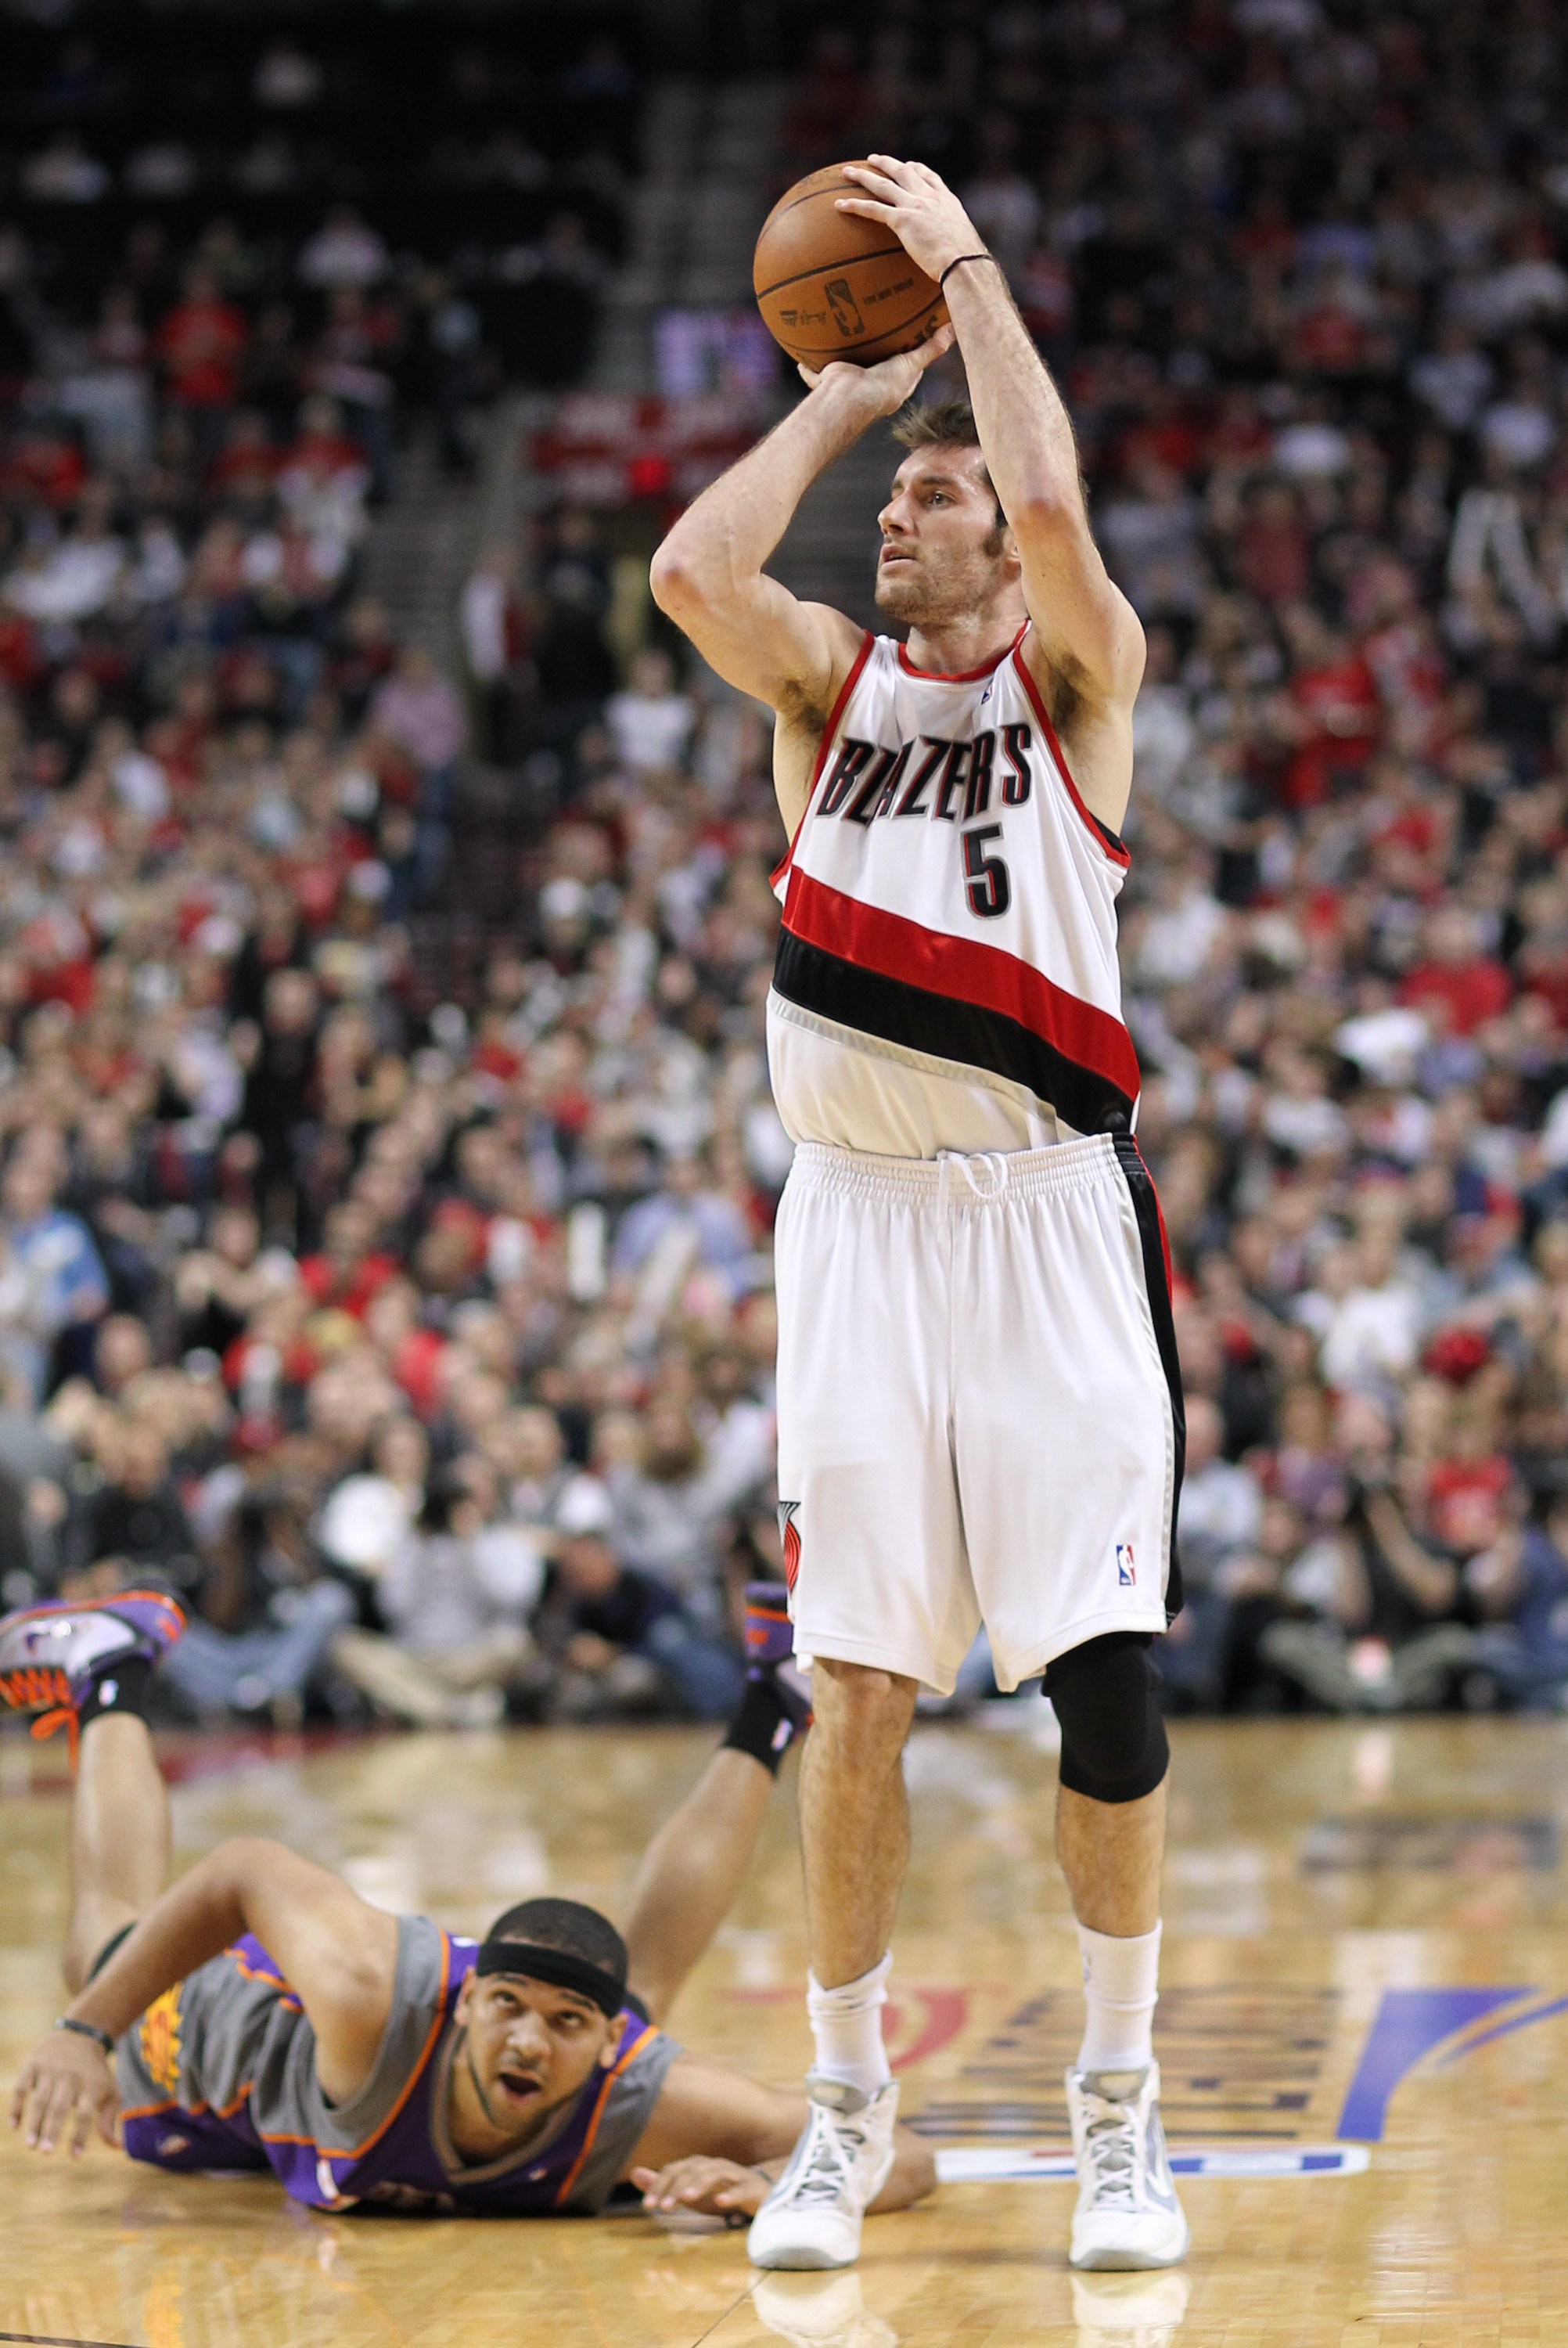 PORTLAND, OR - APRIL 29:  Rudy Fernandez #5 of the Portland Trail Blazers shoots against the Phoenix Suns during Game Six of the Western Conference Quarterfinals of the NBA Playoffs on April 29, 2010 at the Rose Garden in Portland, Oregon. NOTE TO USER: U